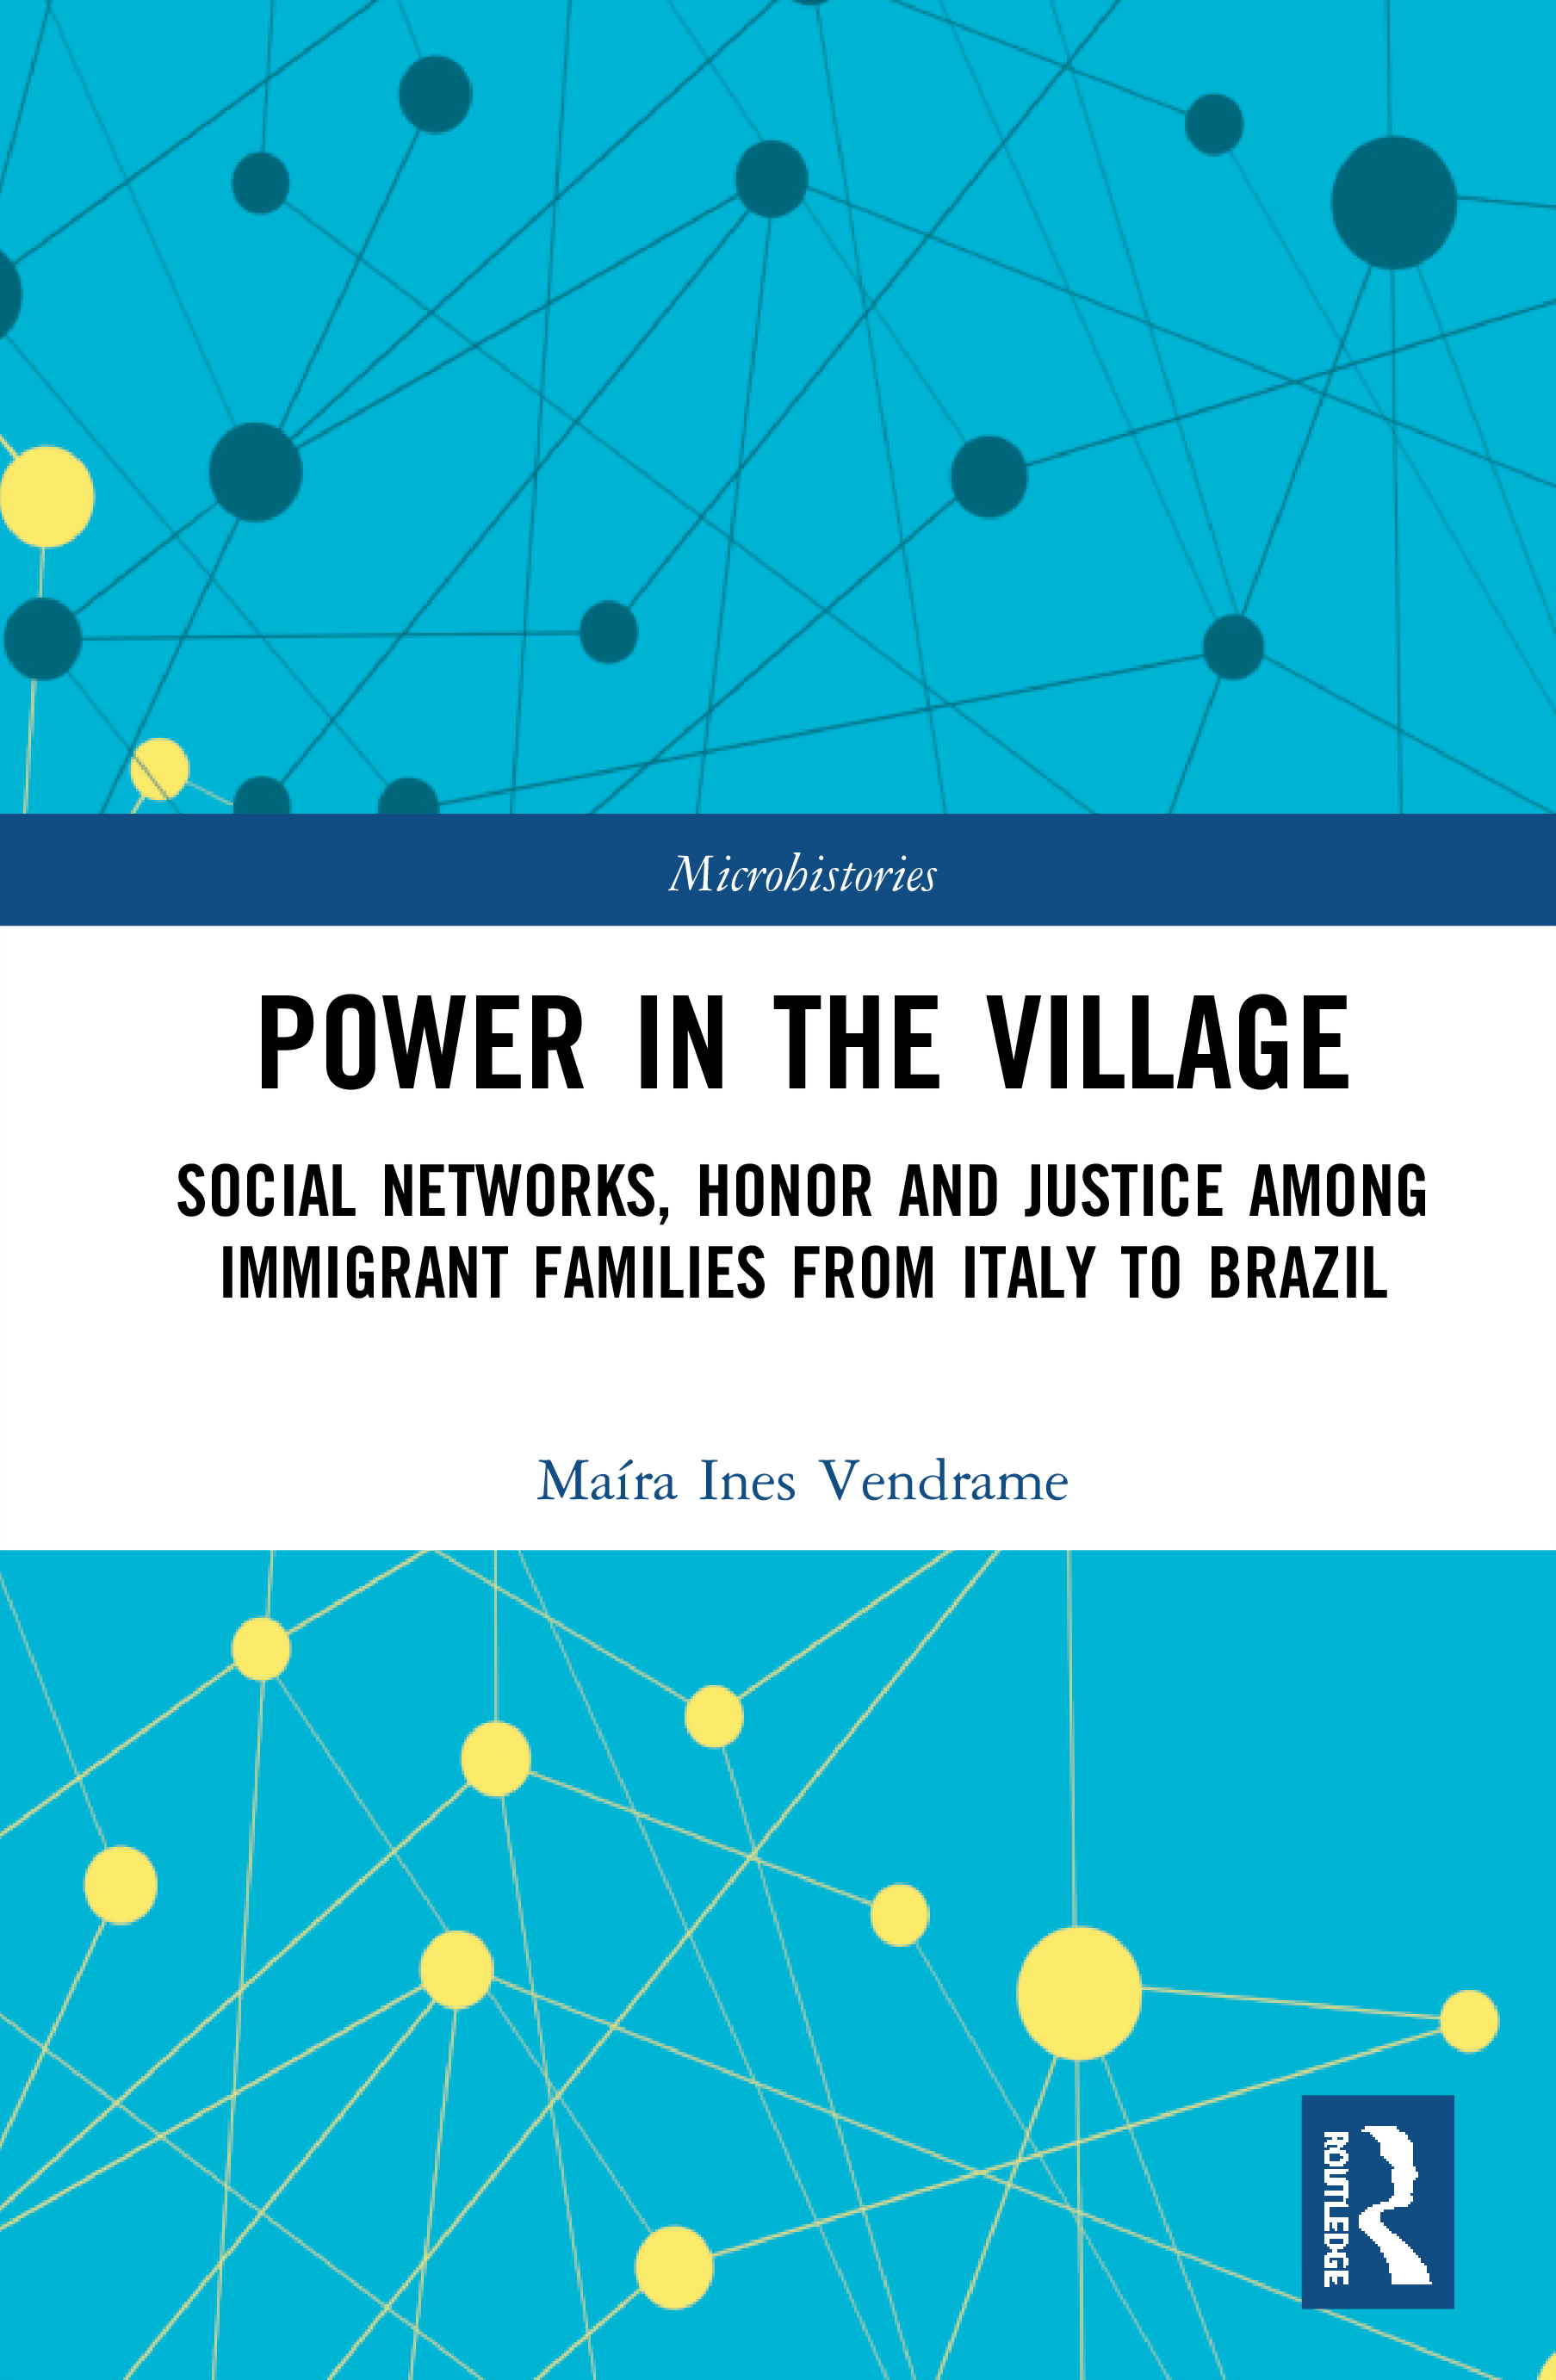 Power in the Village: Social Networks, Honor and Justice among Immigrant Families from Italy to Brazil book cover